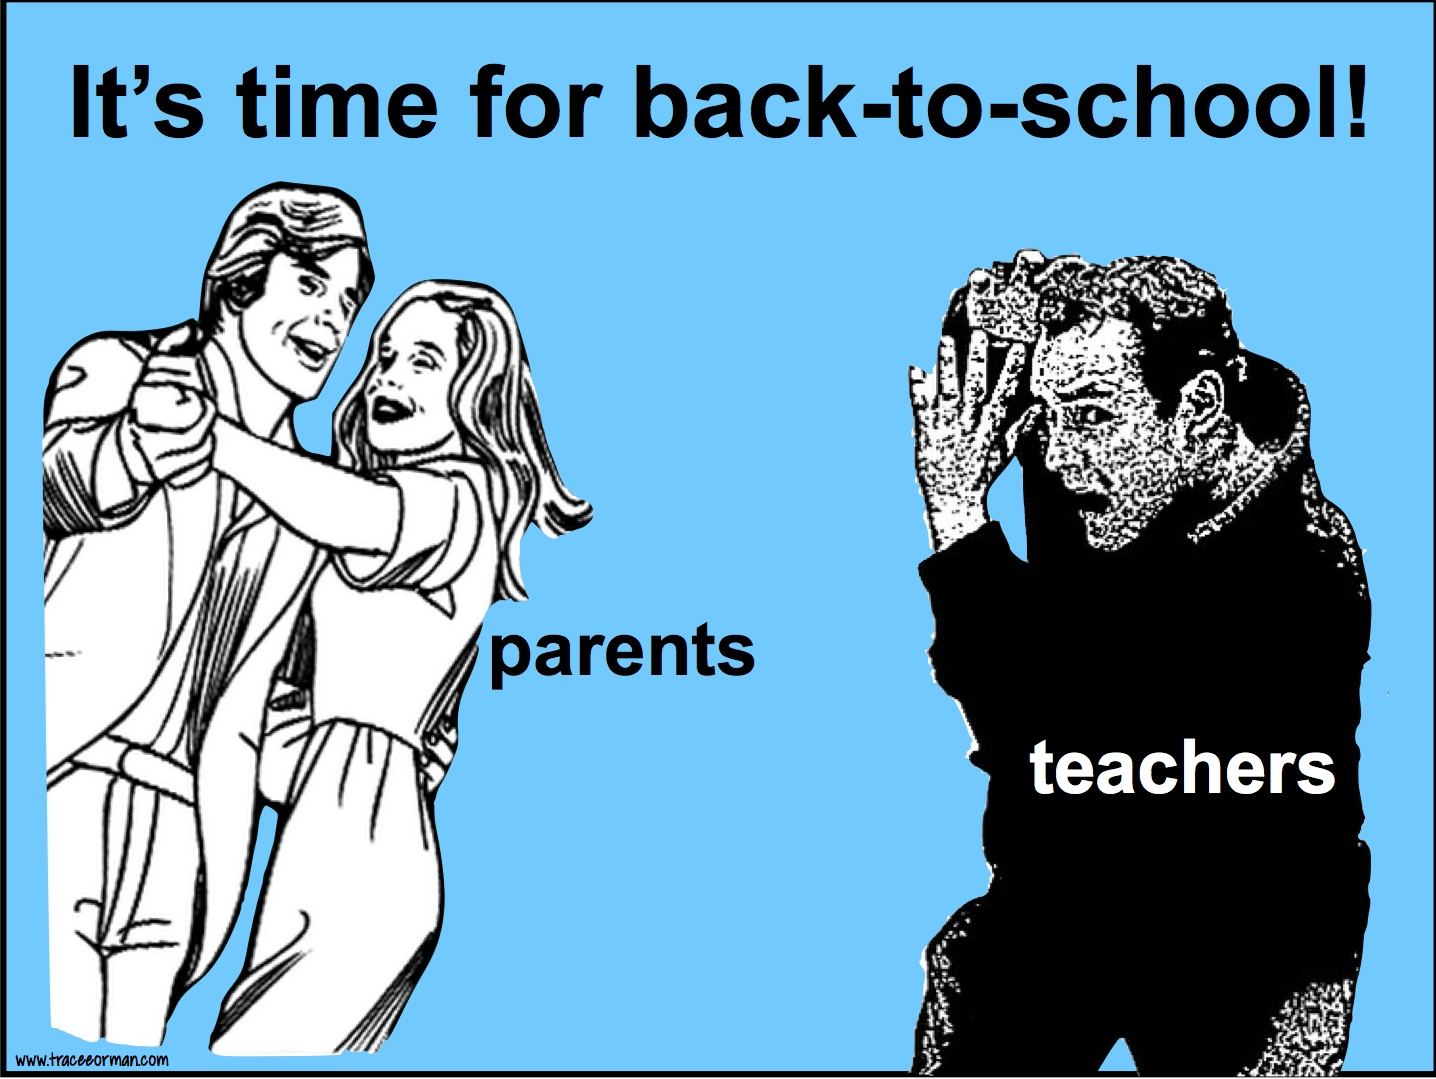 Argumentative working part time while going to school